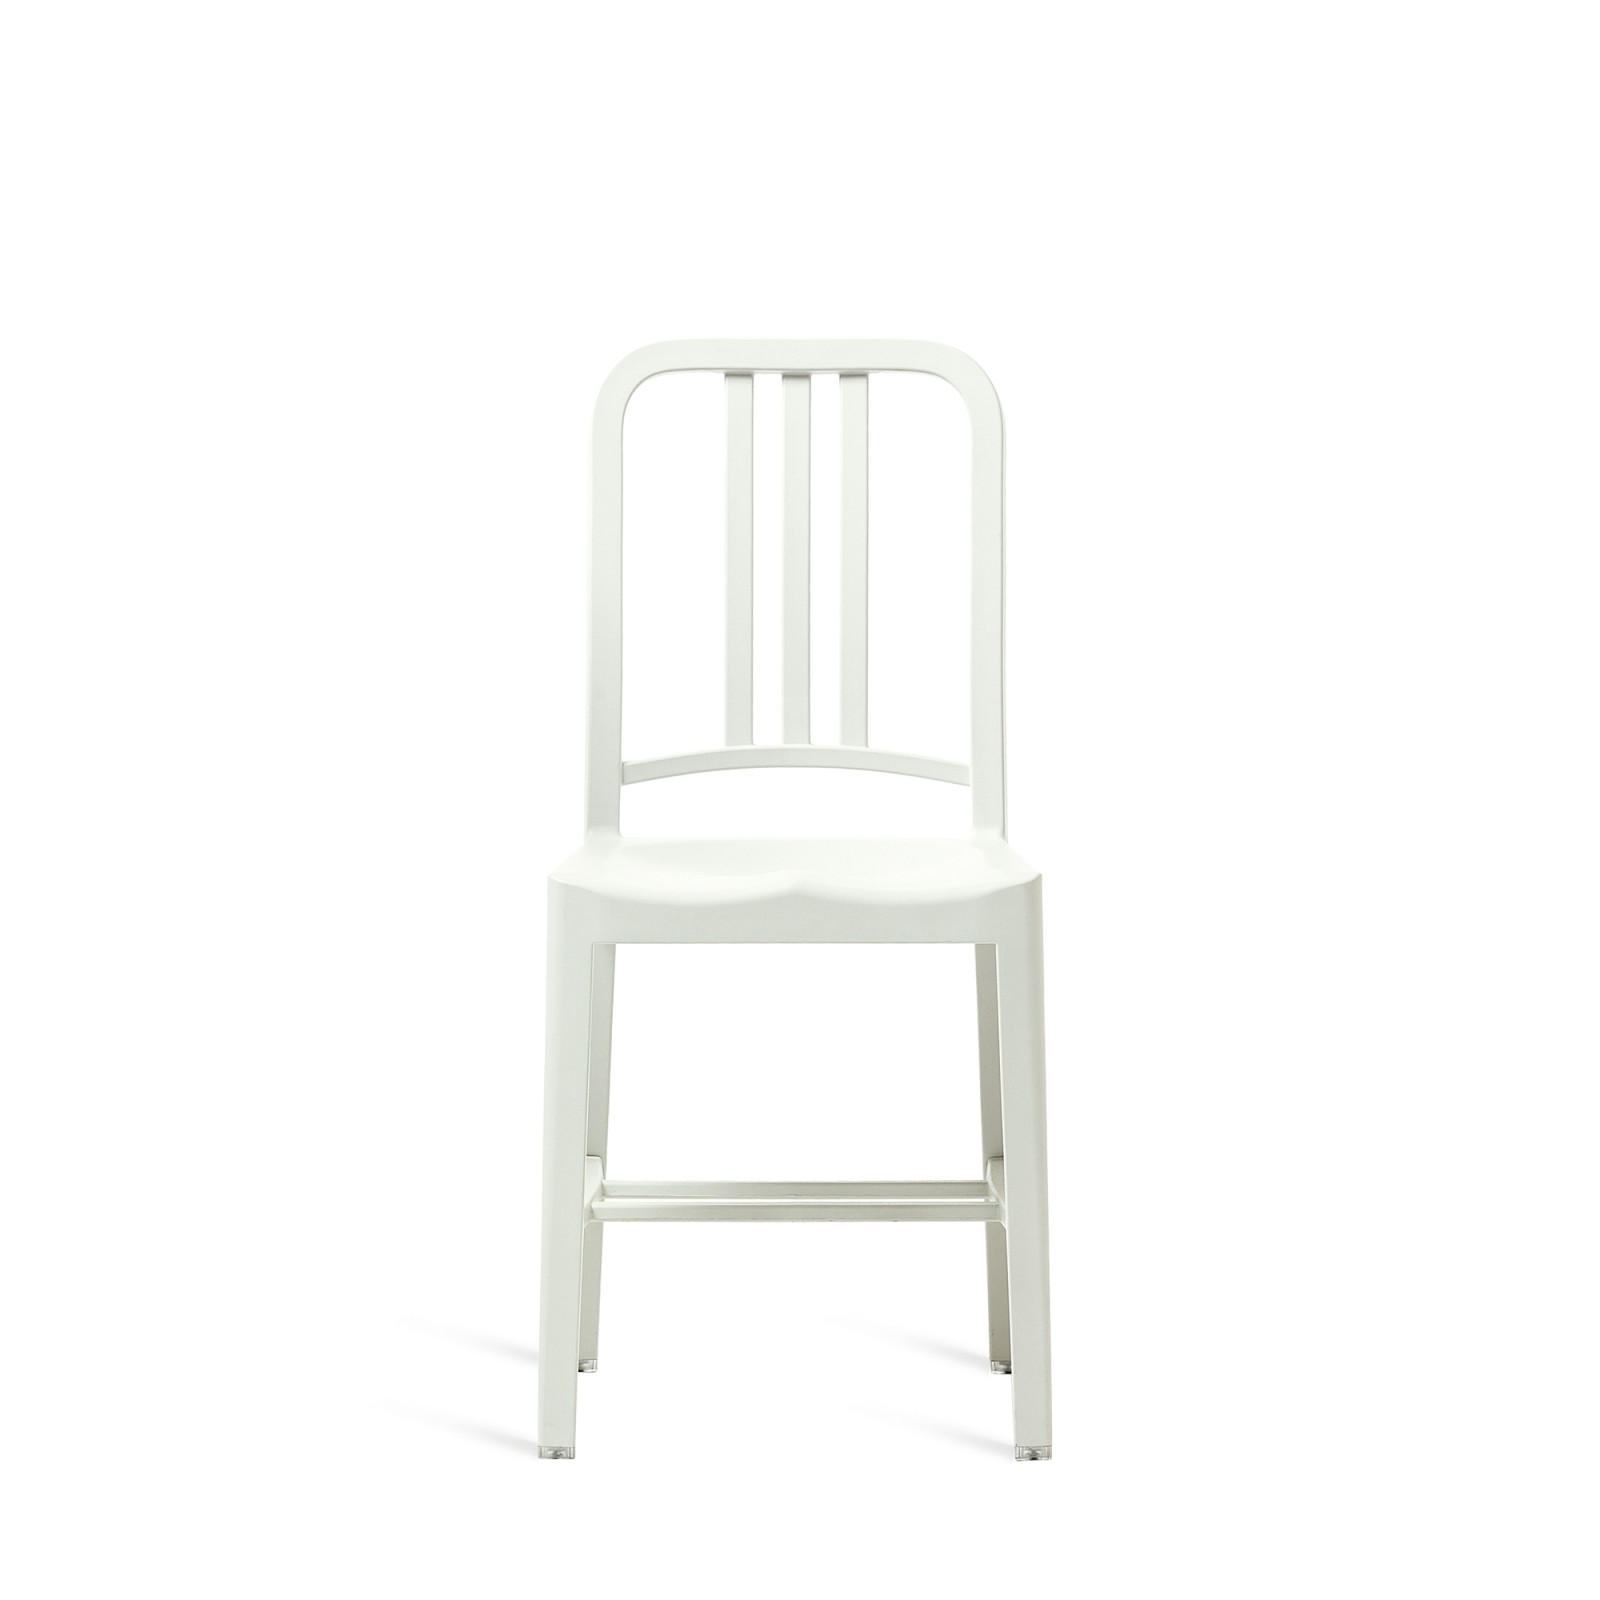 111 Navy Dining Chair - Set of 2 Snow White